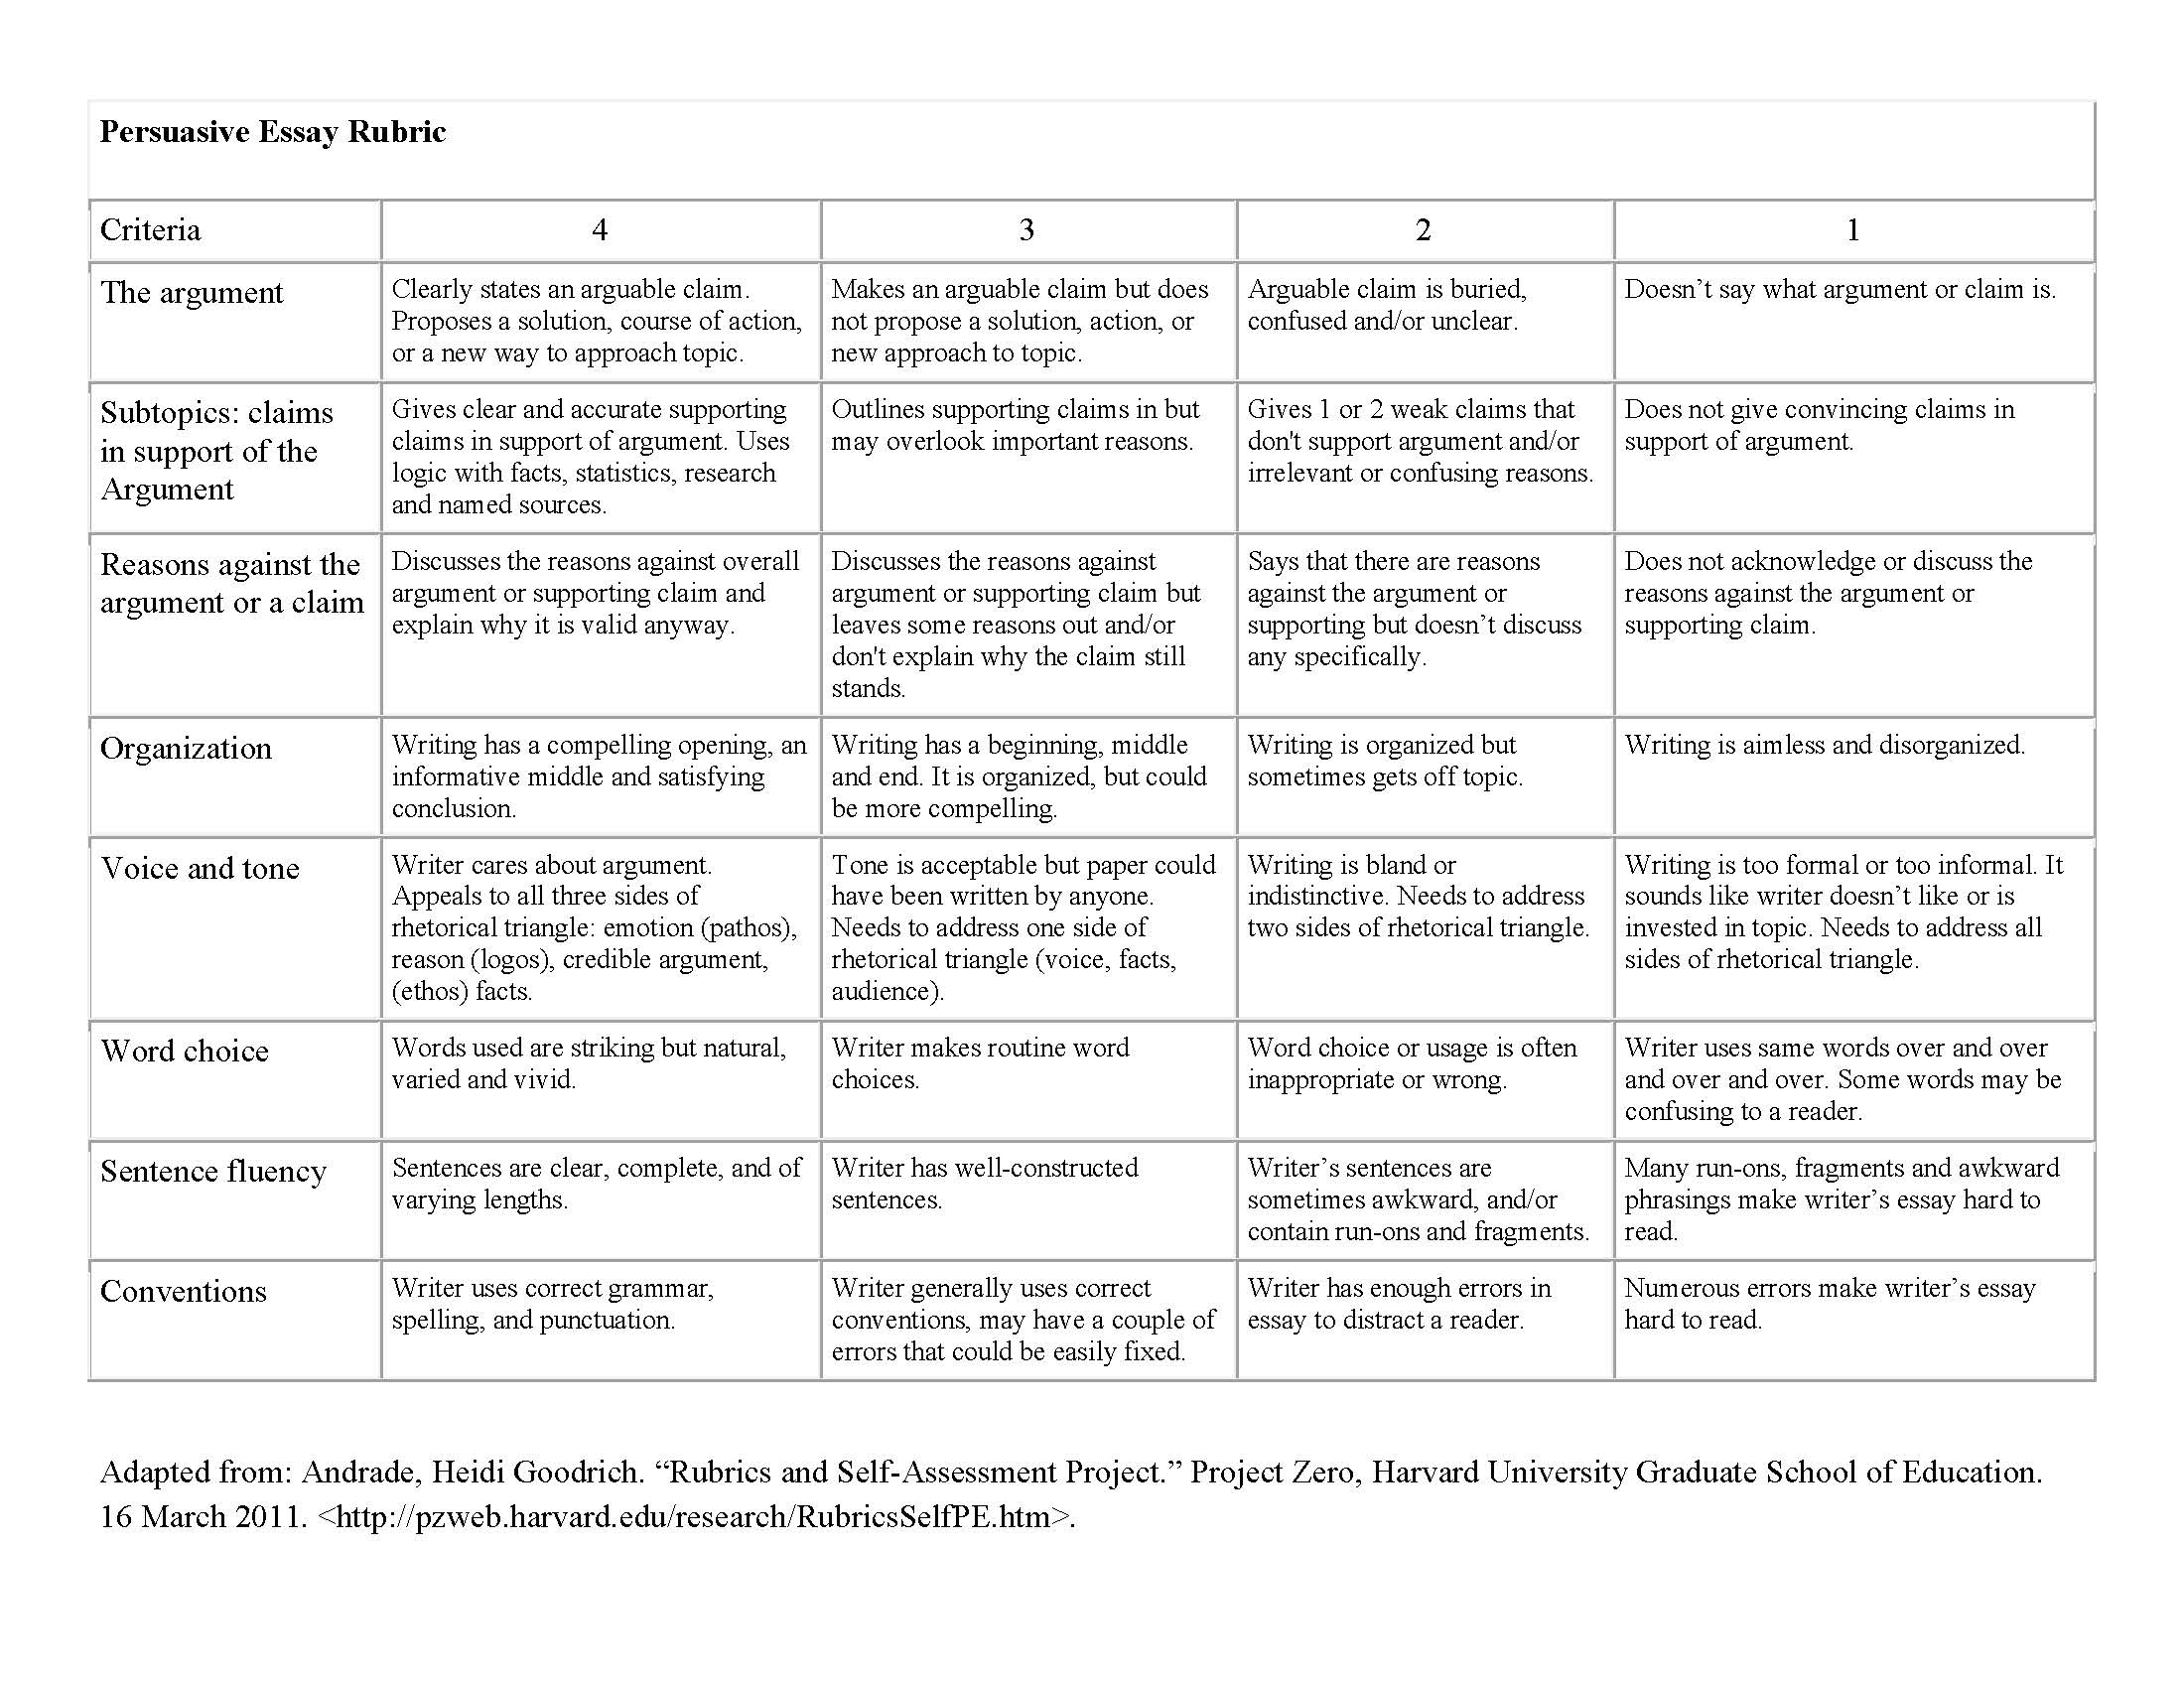 Rubric for persuasive writing